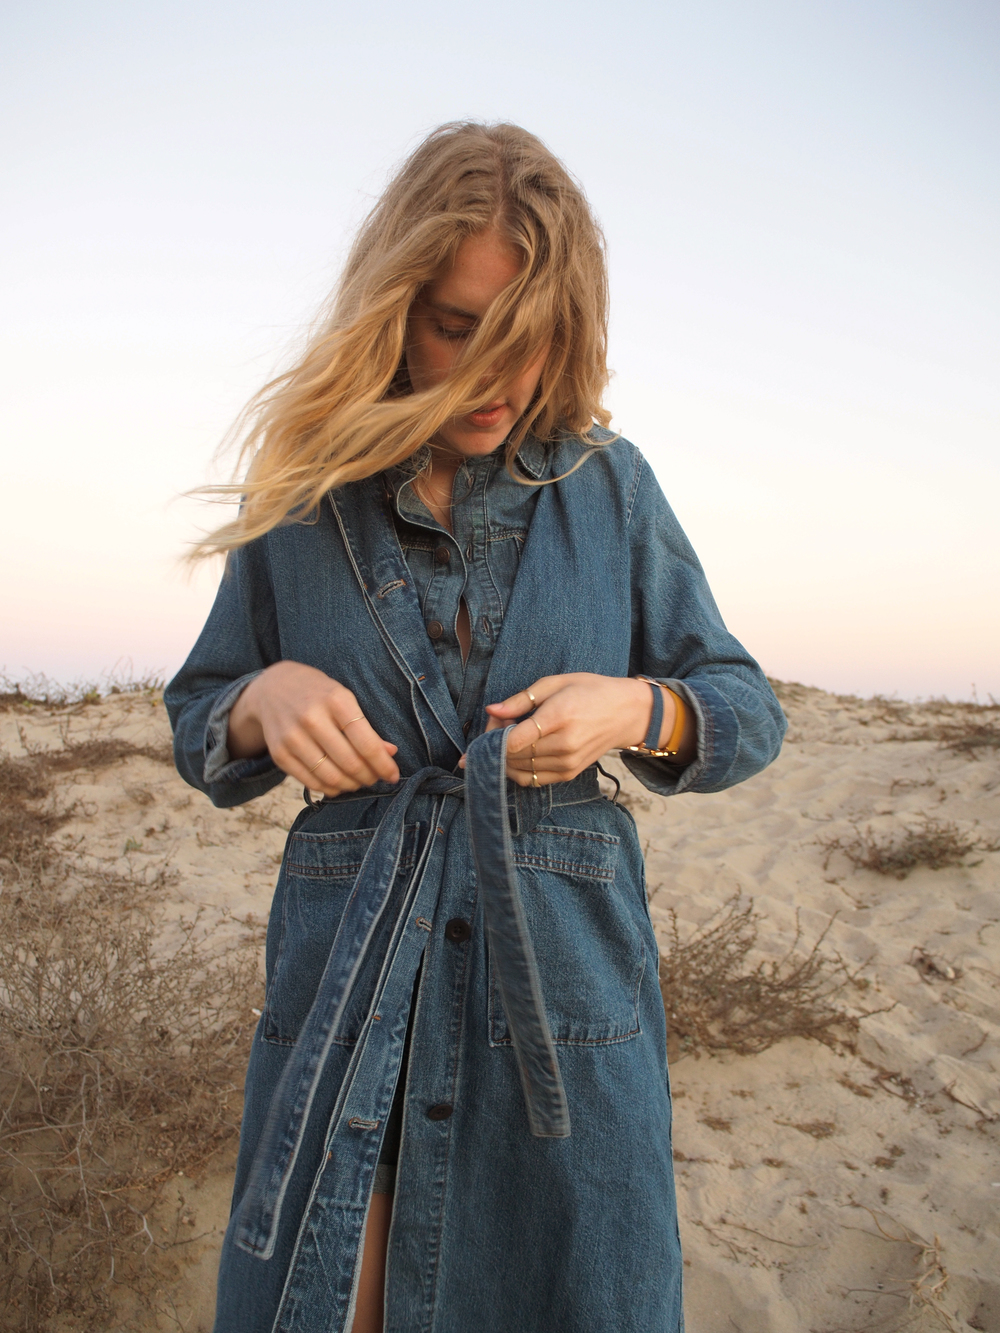 Abercrombie & Fitch Denim Summer Campaign Taylr Anne www.taylranne.com